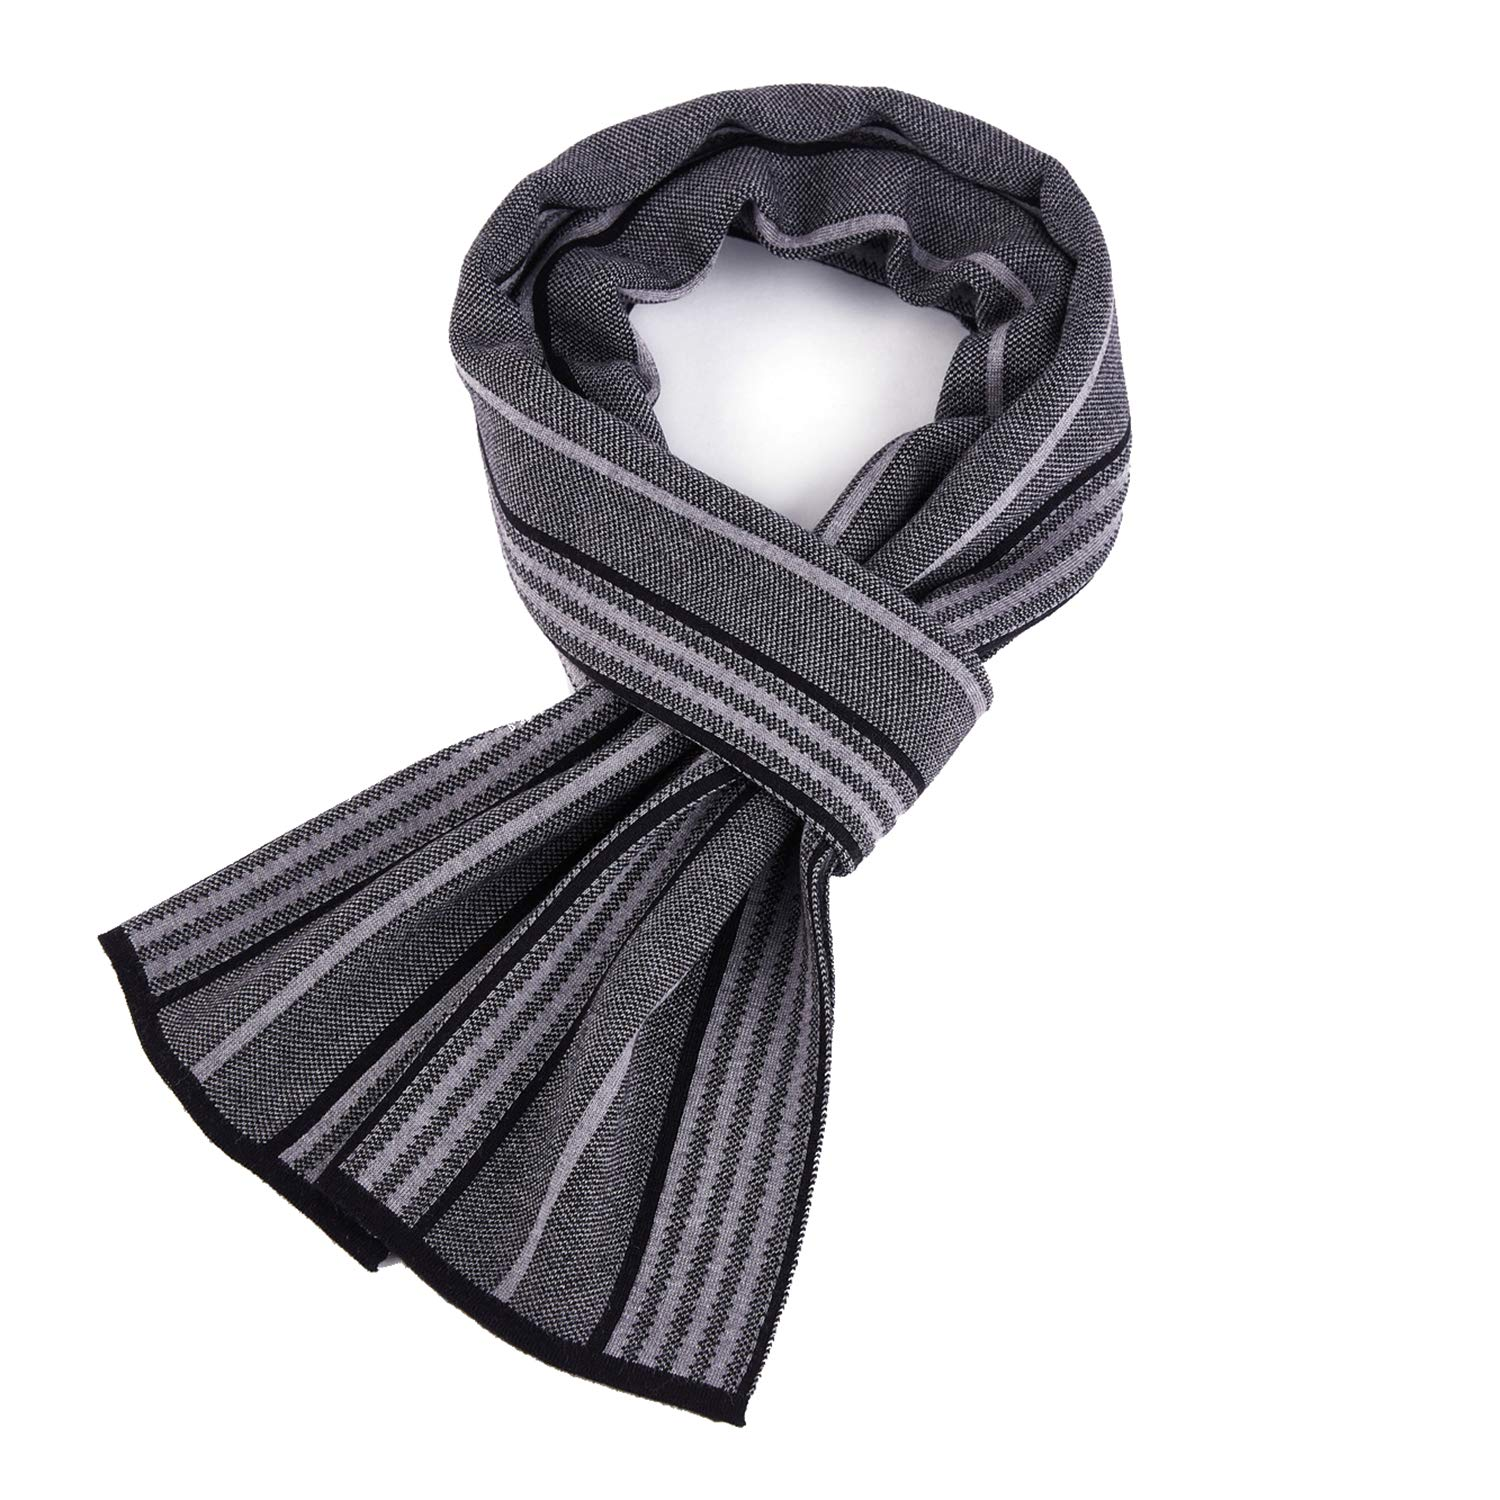 Taylormia Men's Winter Cashmere Scarf Warm Thick Long Stripe Knit Scarves Black Grey